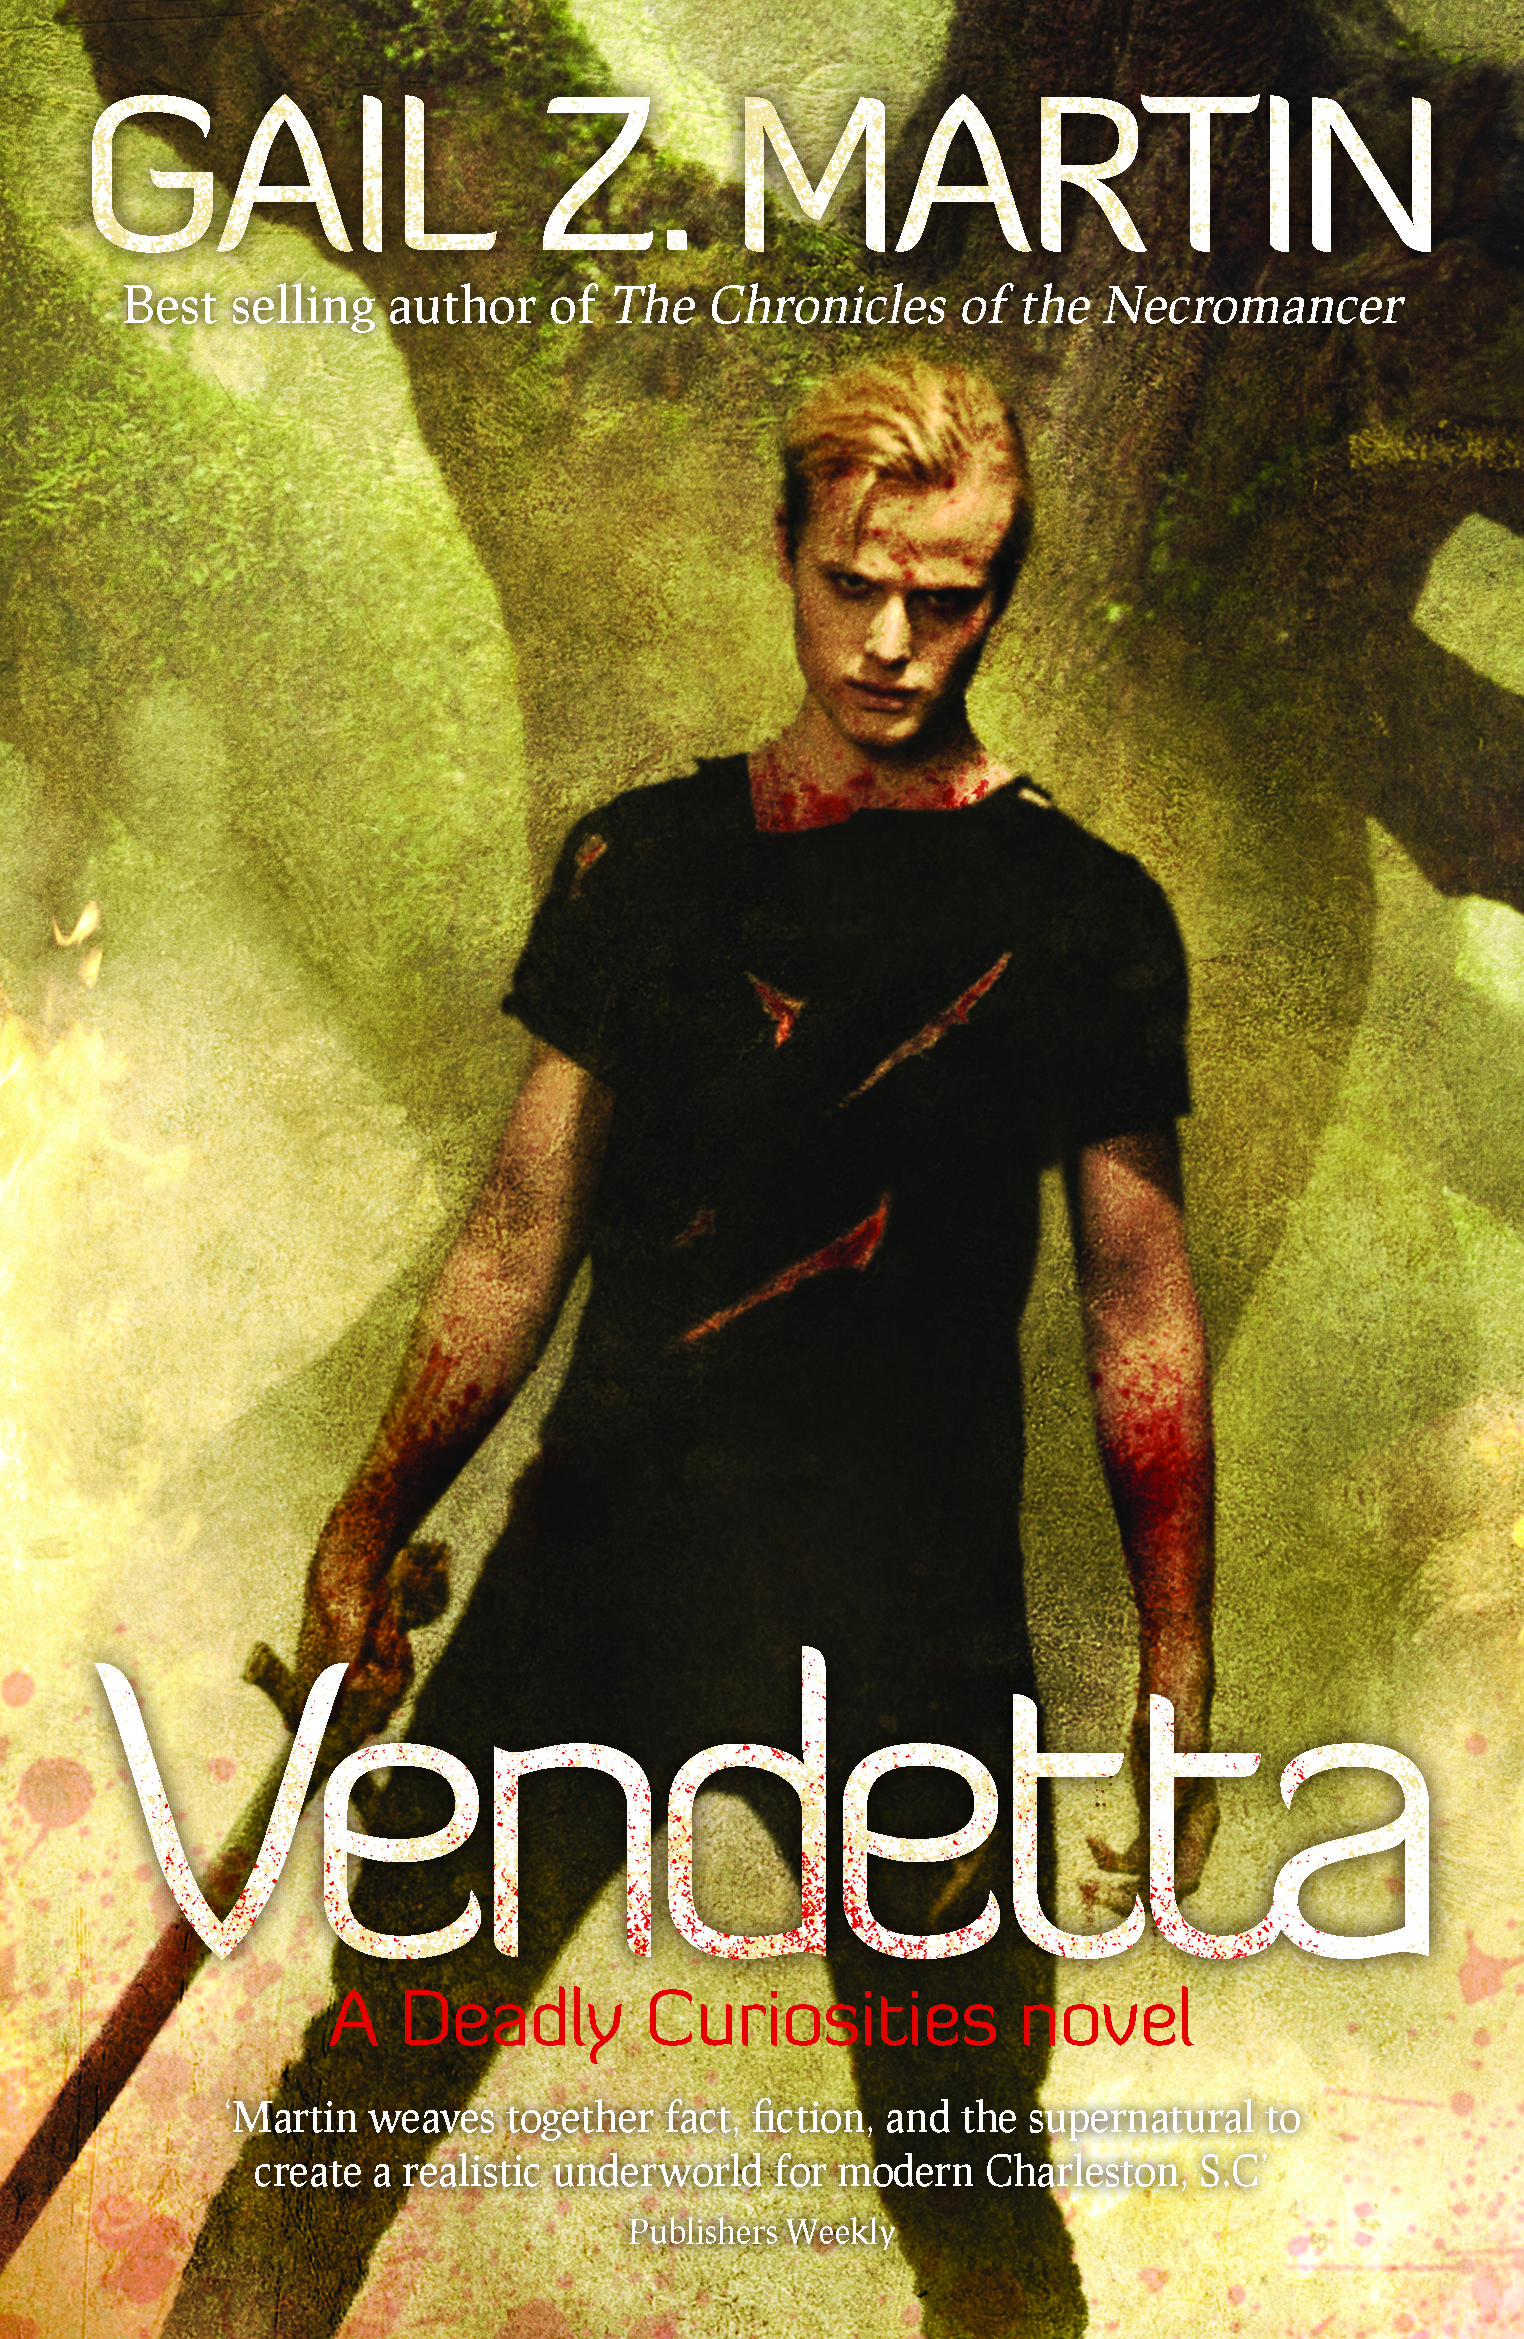 DEADLY CURIOSITIES-VENDETTA